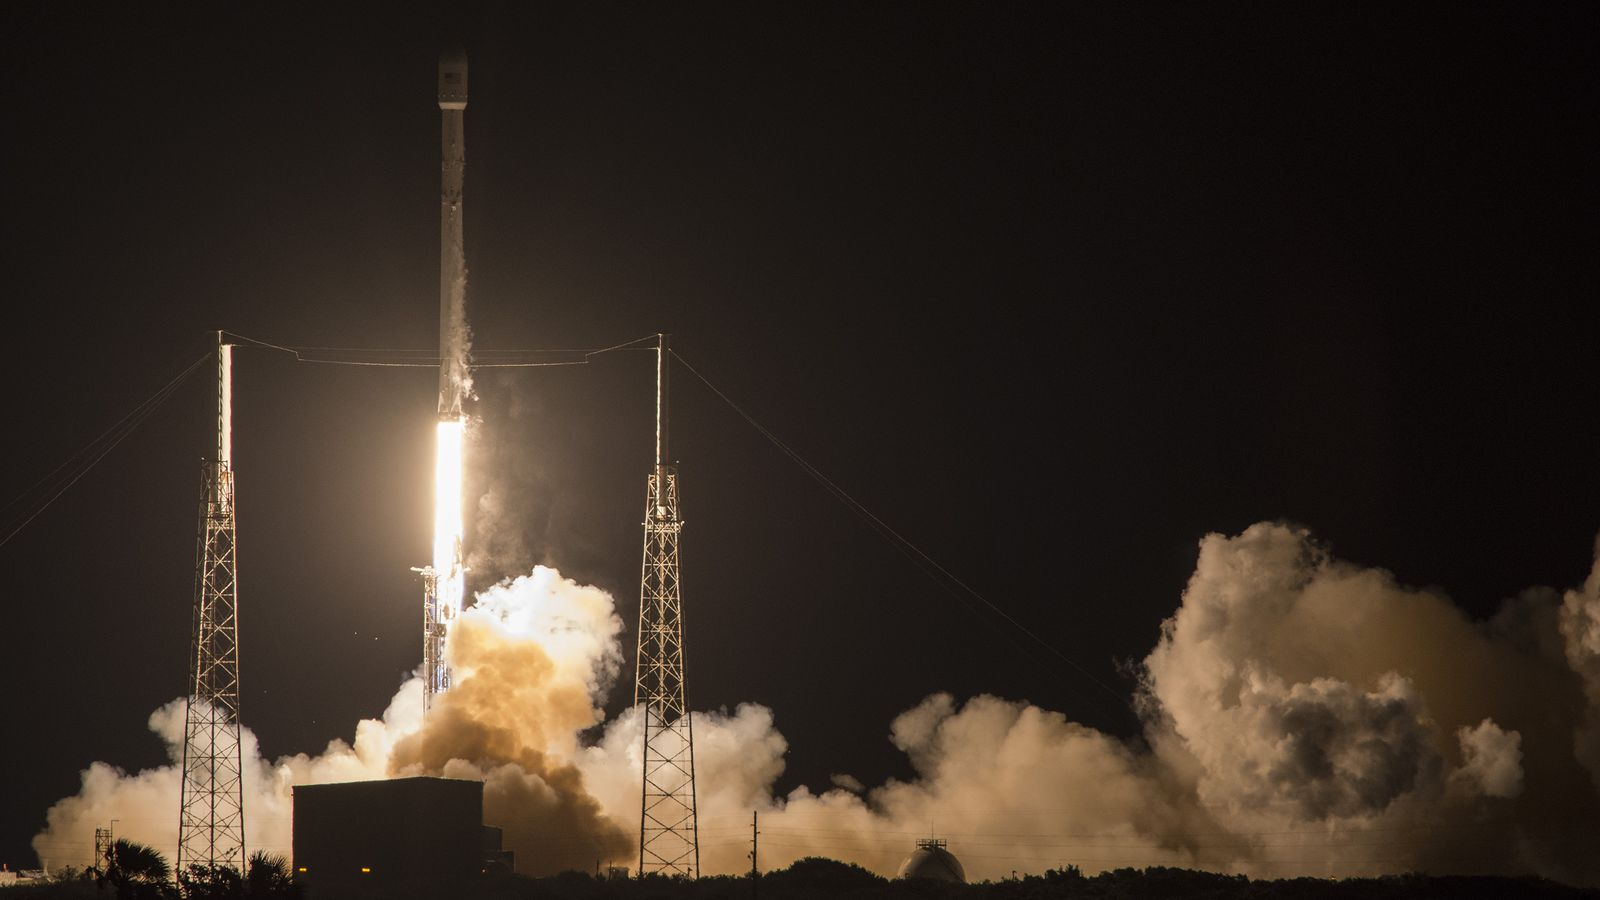 Tonight's SpaceX Falcon 9 rocket launch: start time, live stream, and what to expect | The Verge